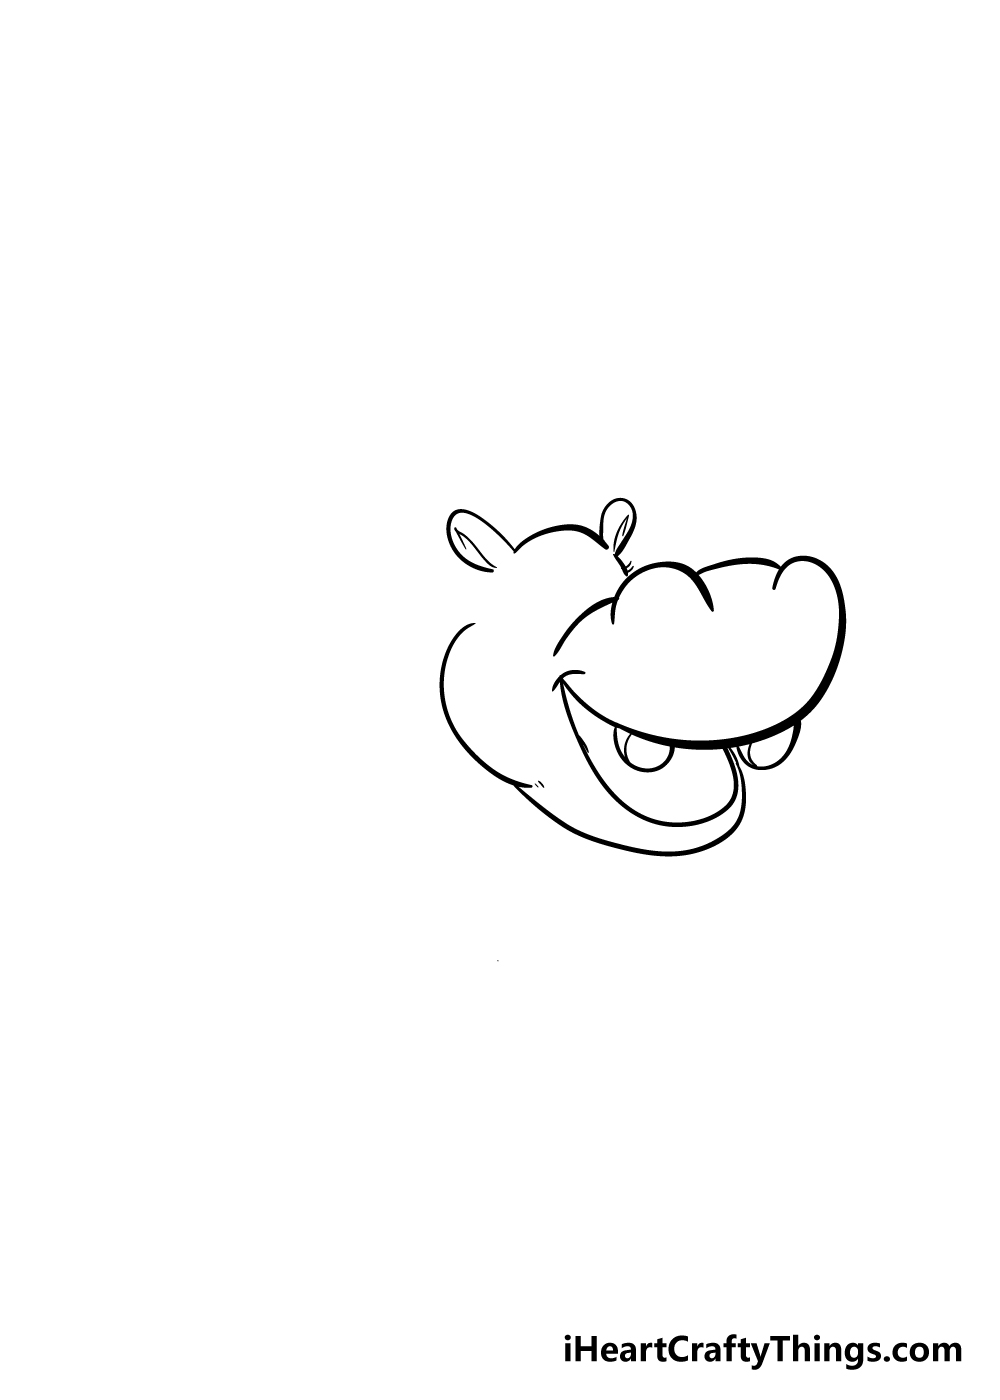 hippo drawing step 2